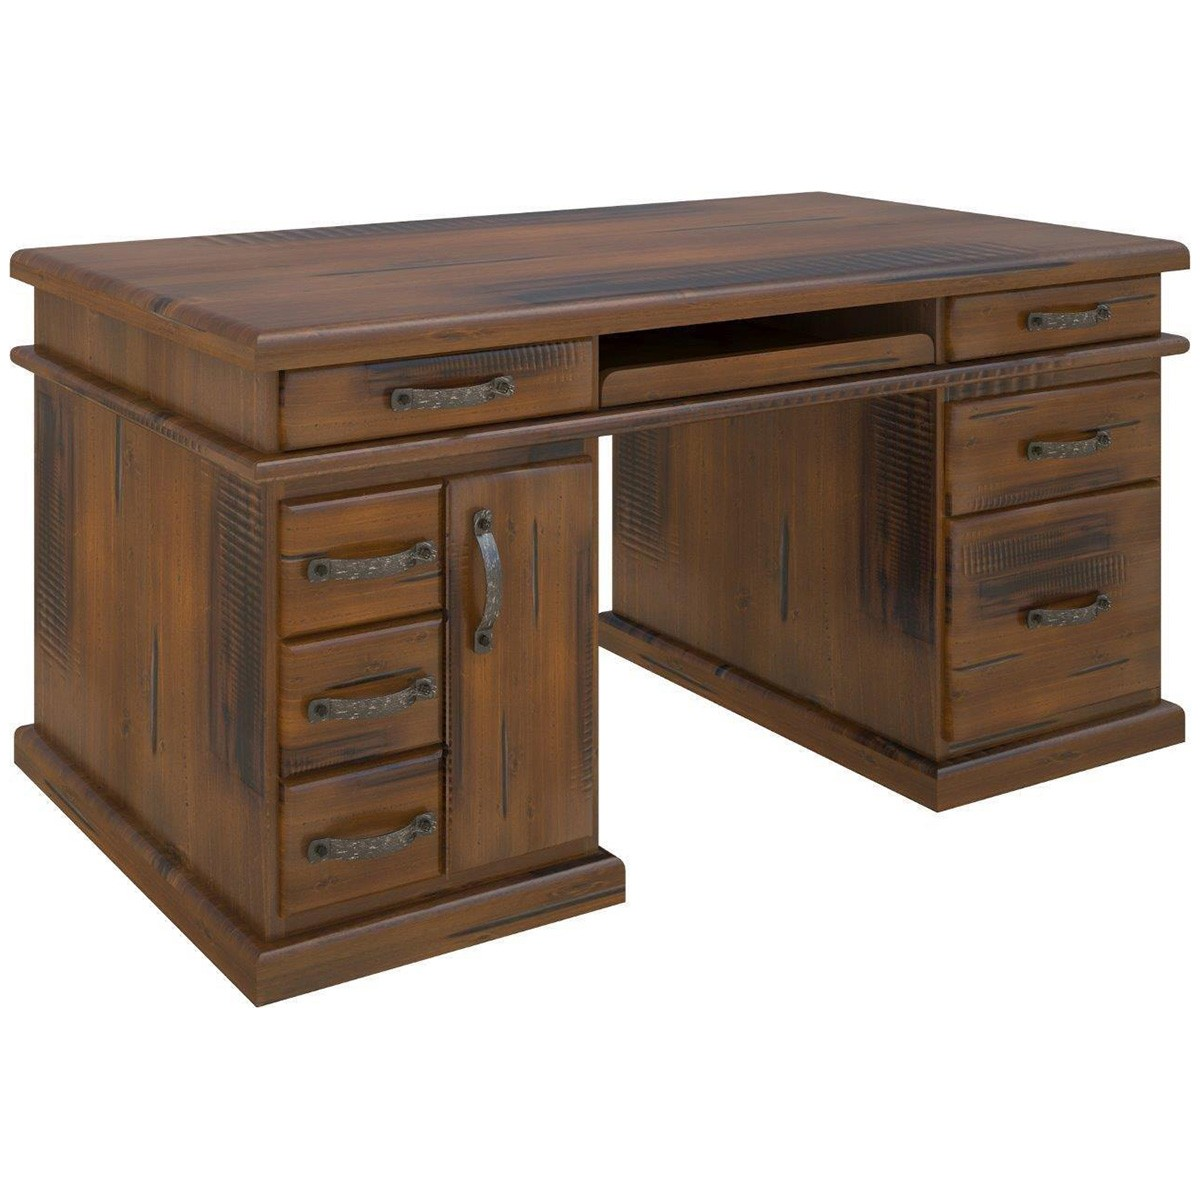 Mulford Solid Pine Timber Exclusive Desk, 165cm